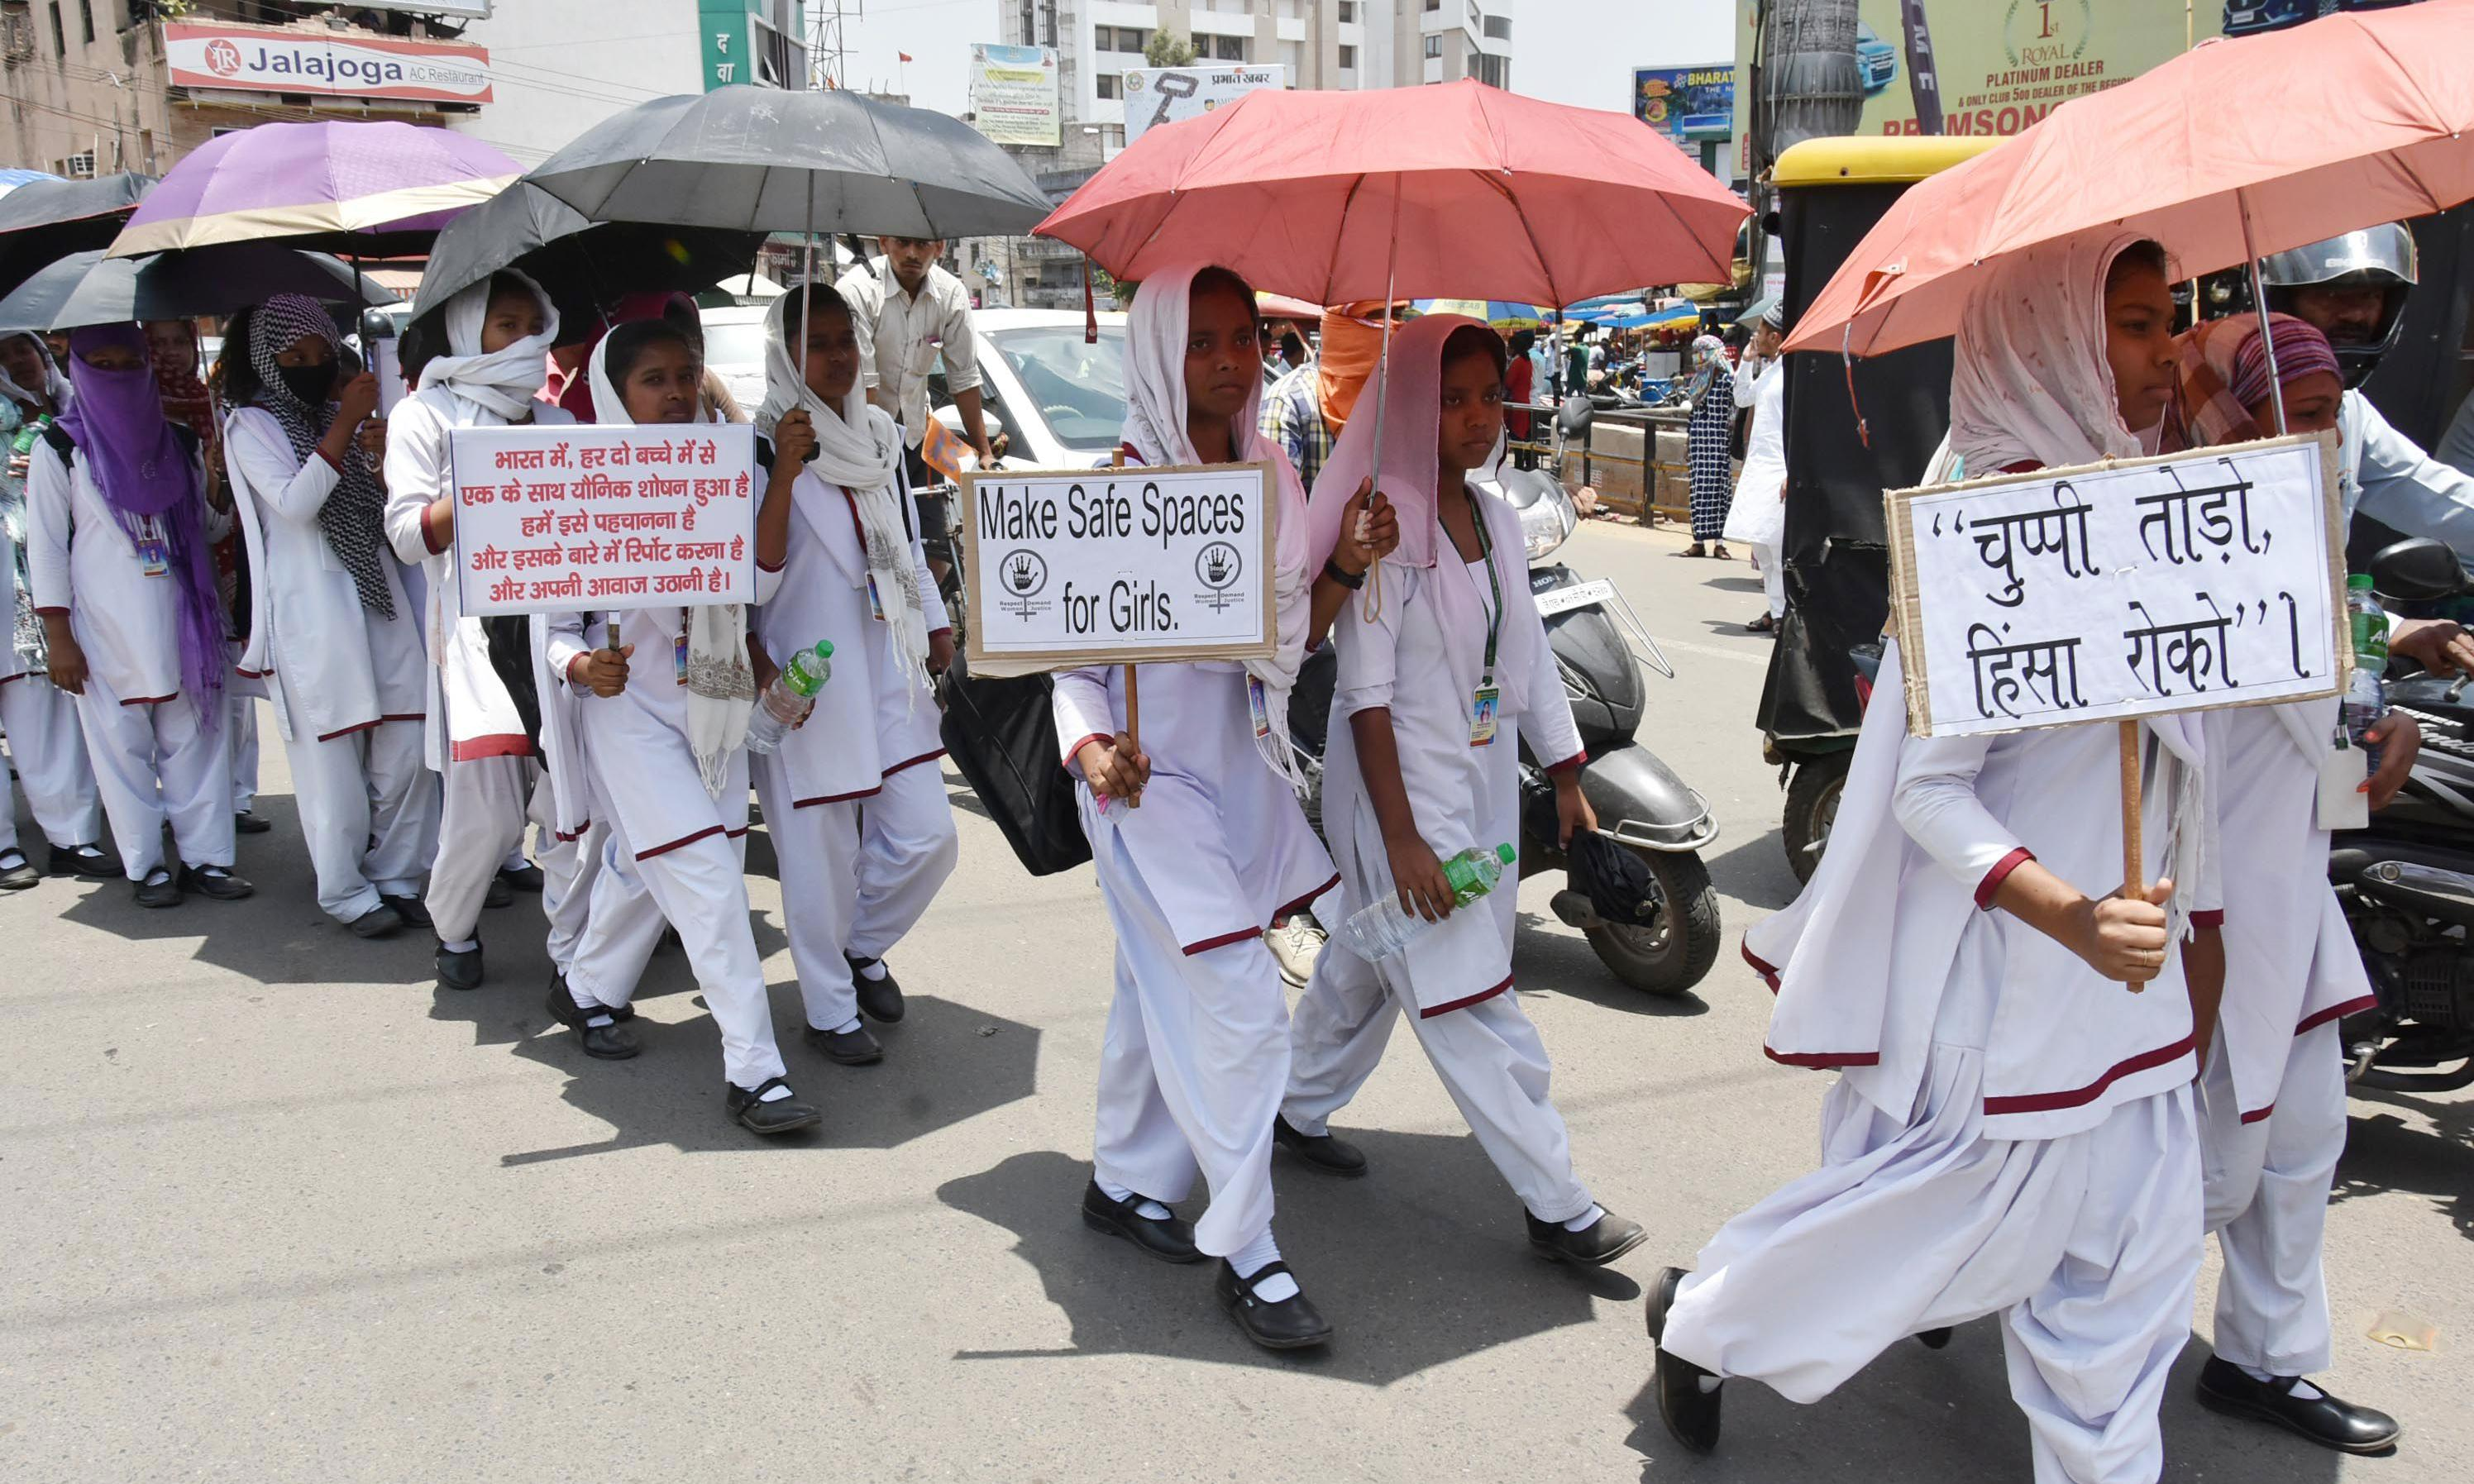 Third teenage girl is raped and burned alive in India in one week